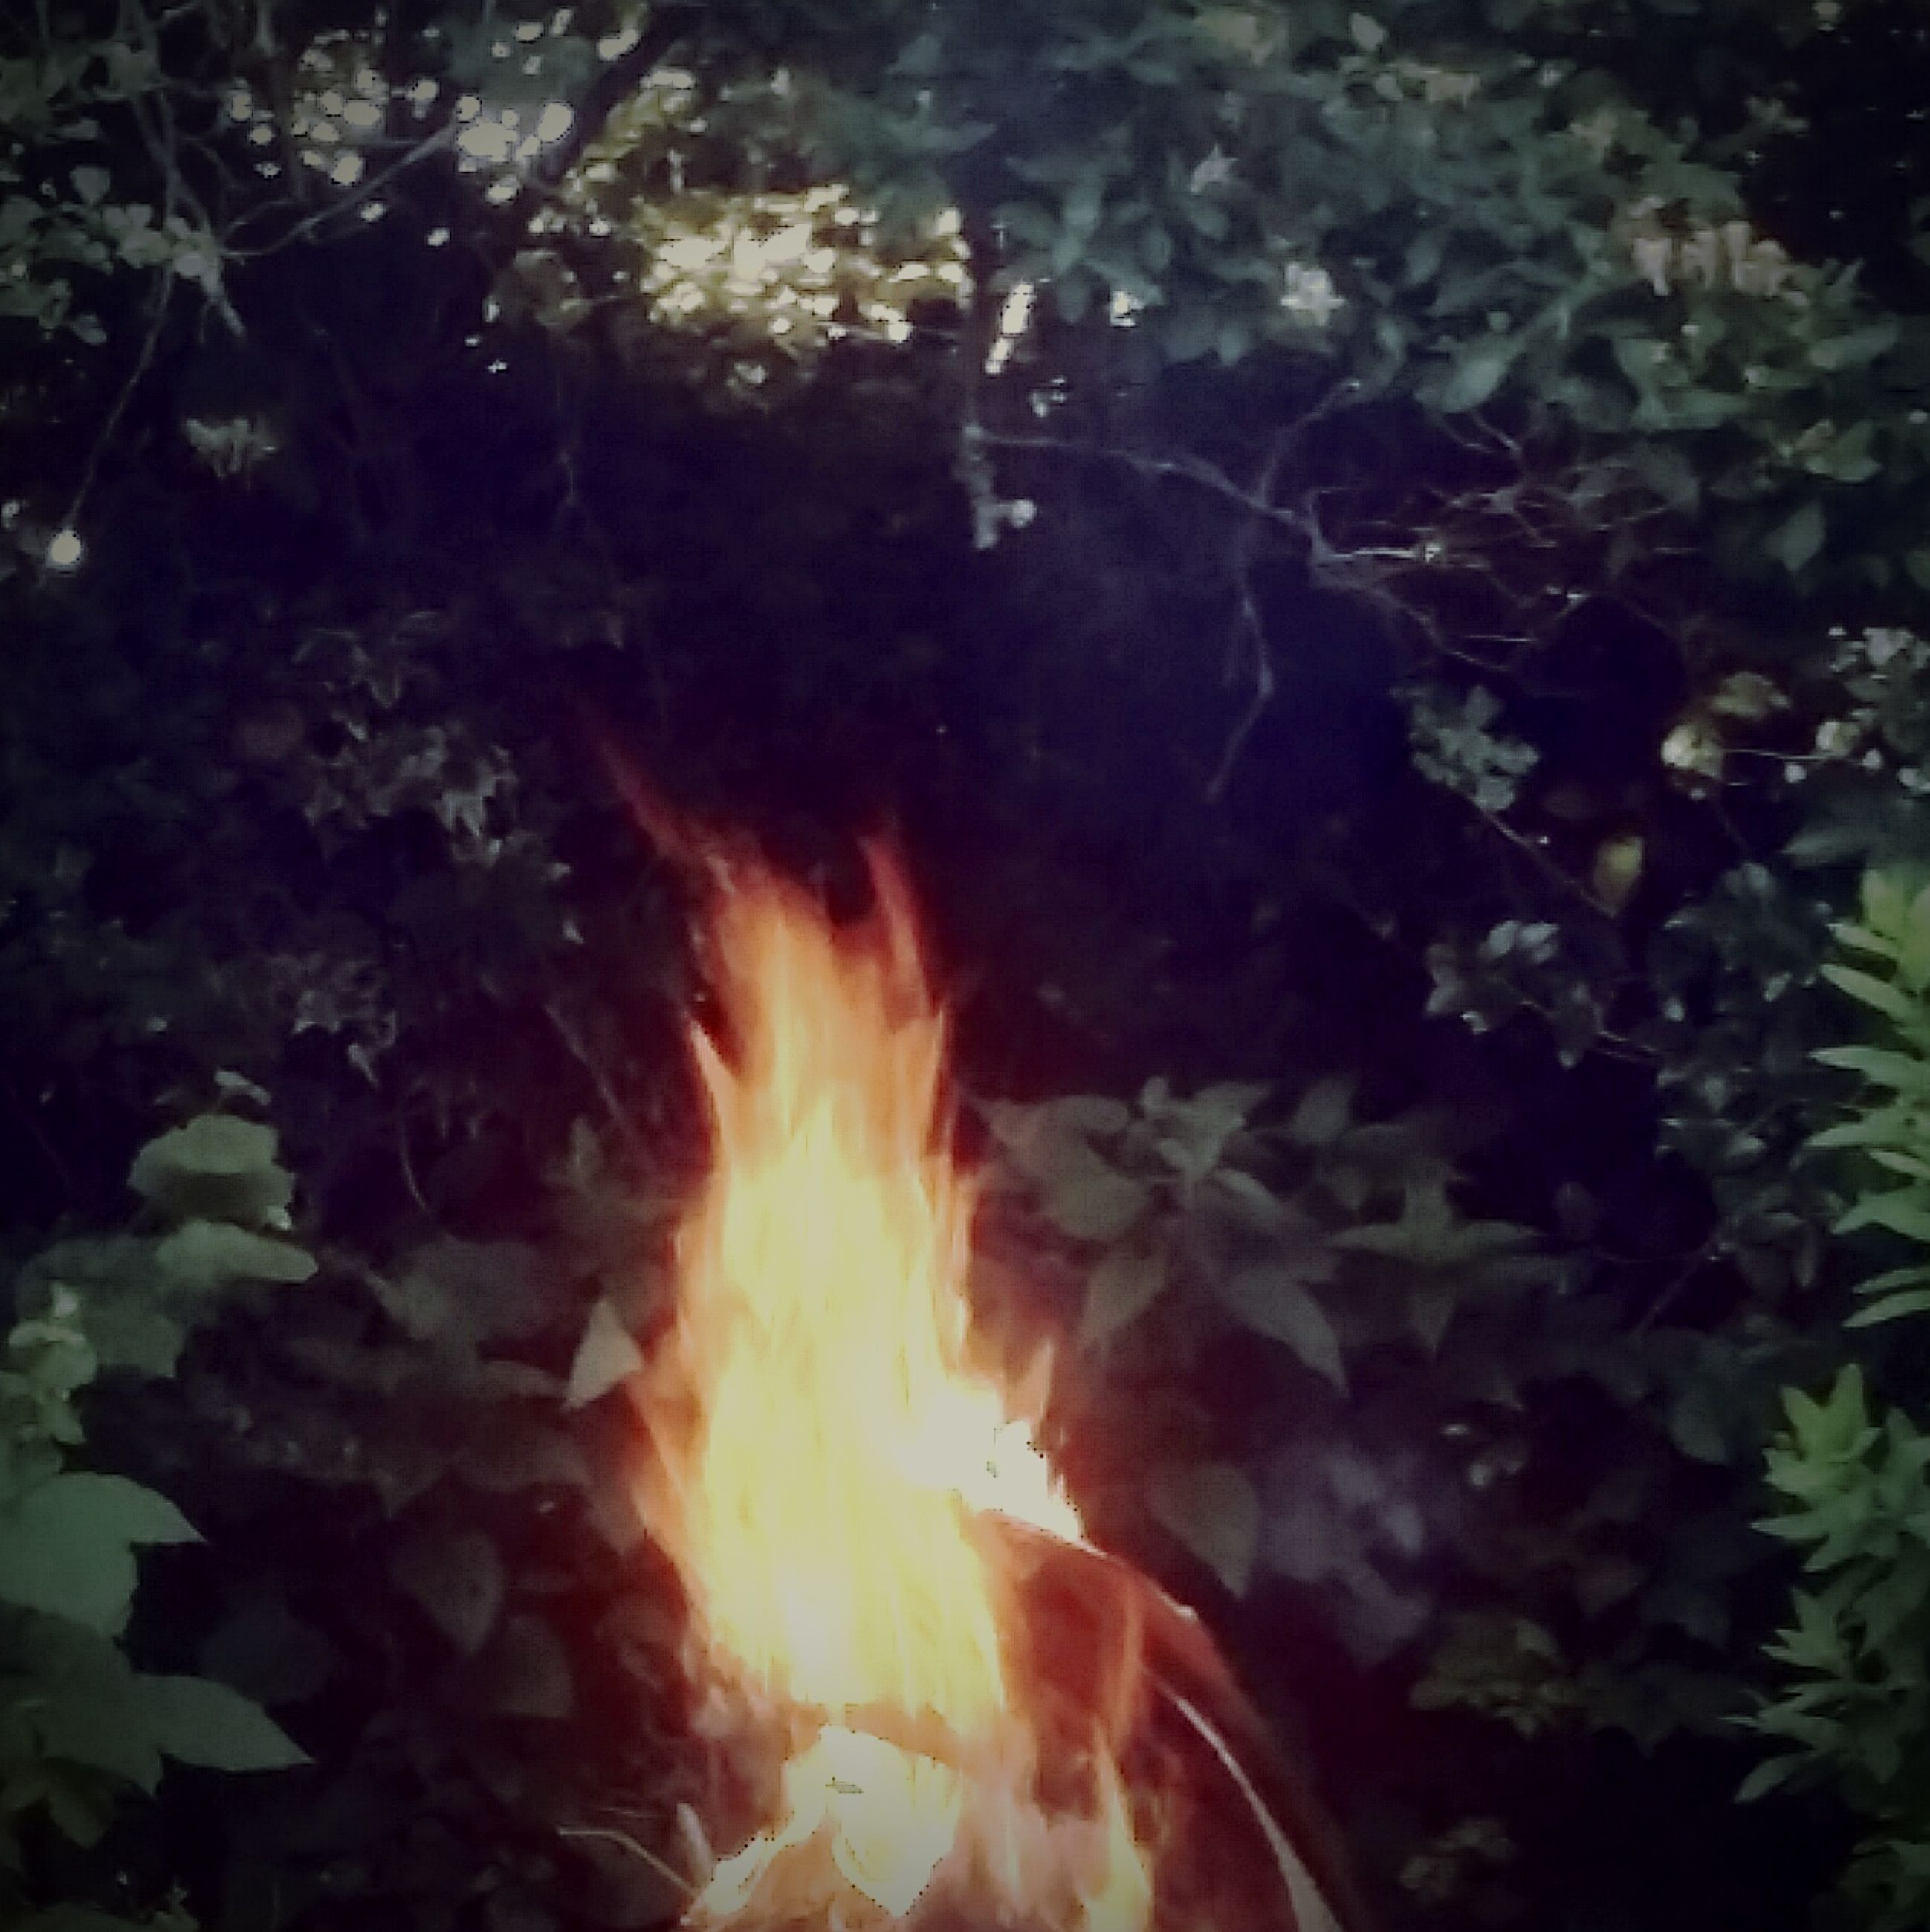 burning, flame, fire - natural phenomenon, heat - temperature, bonfire, fire, close-up, firewood, glowing, nature, heat, outdoors, campfire, no people, plant, growth, orange color, beauty in nature, tranquility, sunbeam, selective focus, focus on foreground, dark